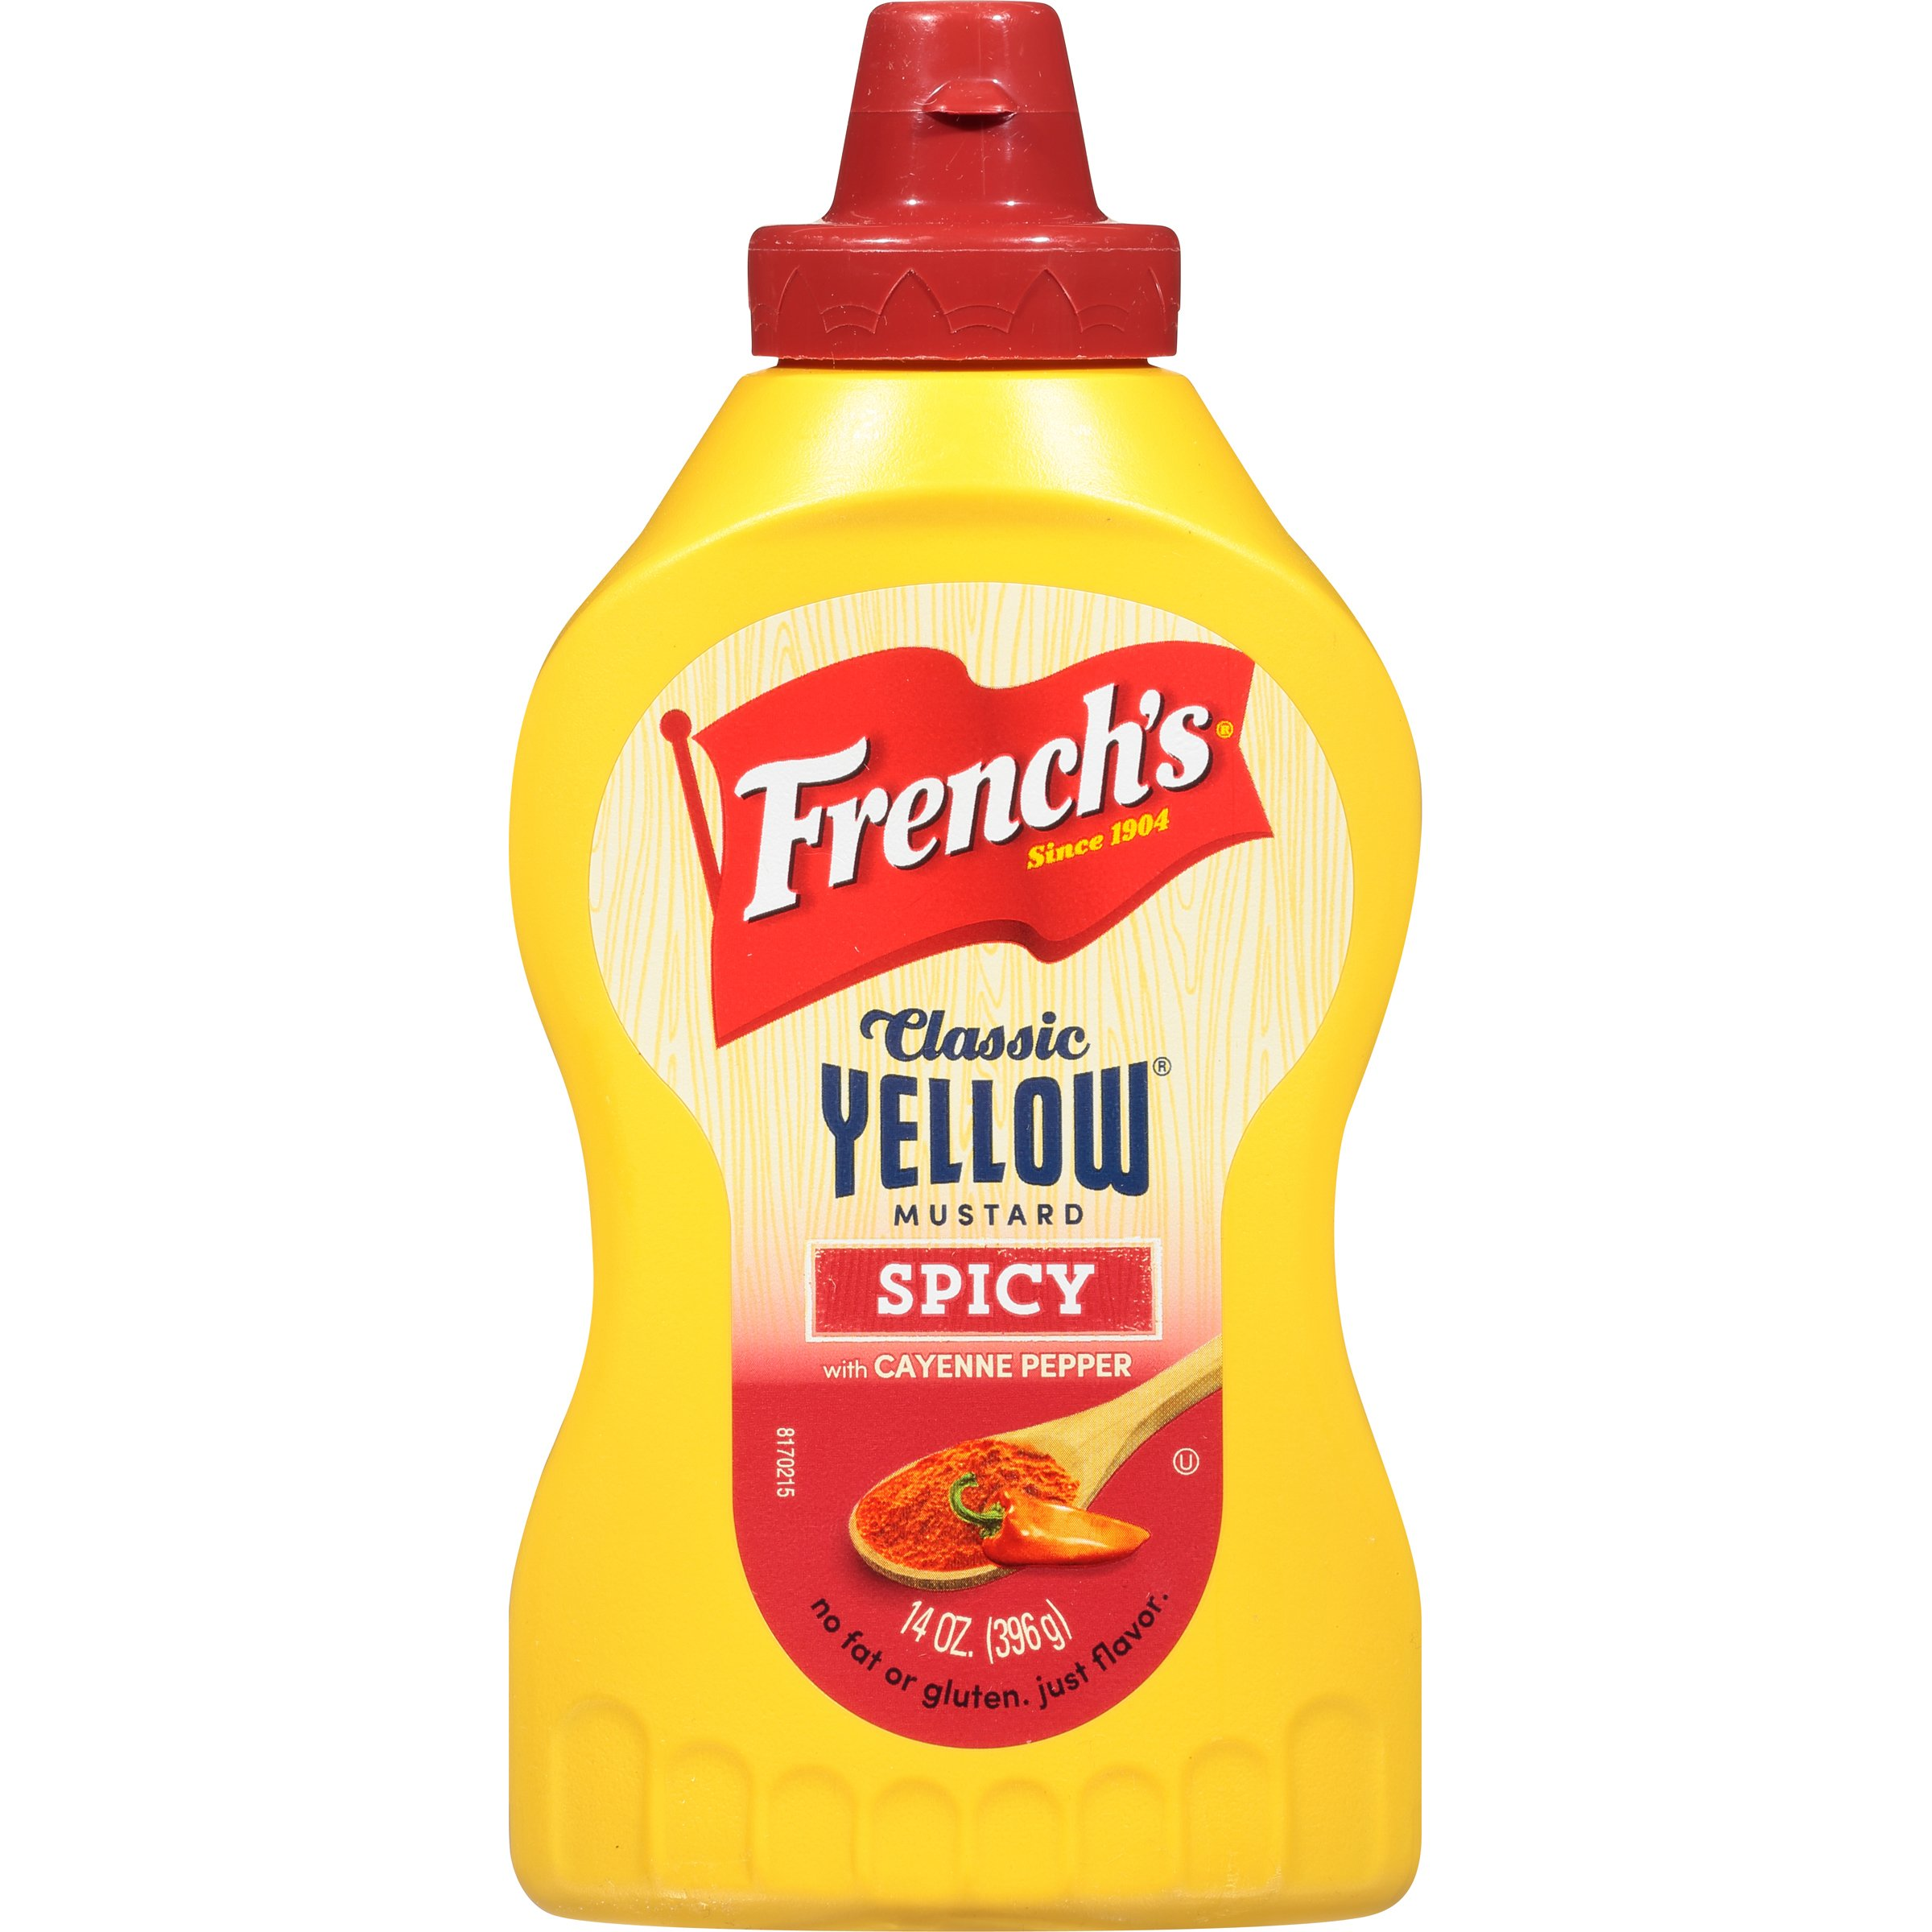 French's Spicy Yellow Mustard, 14 Ounce (Pack of 12)